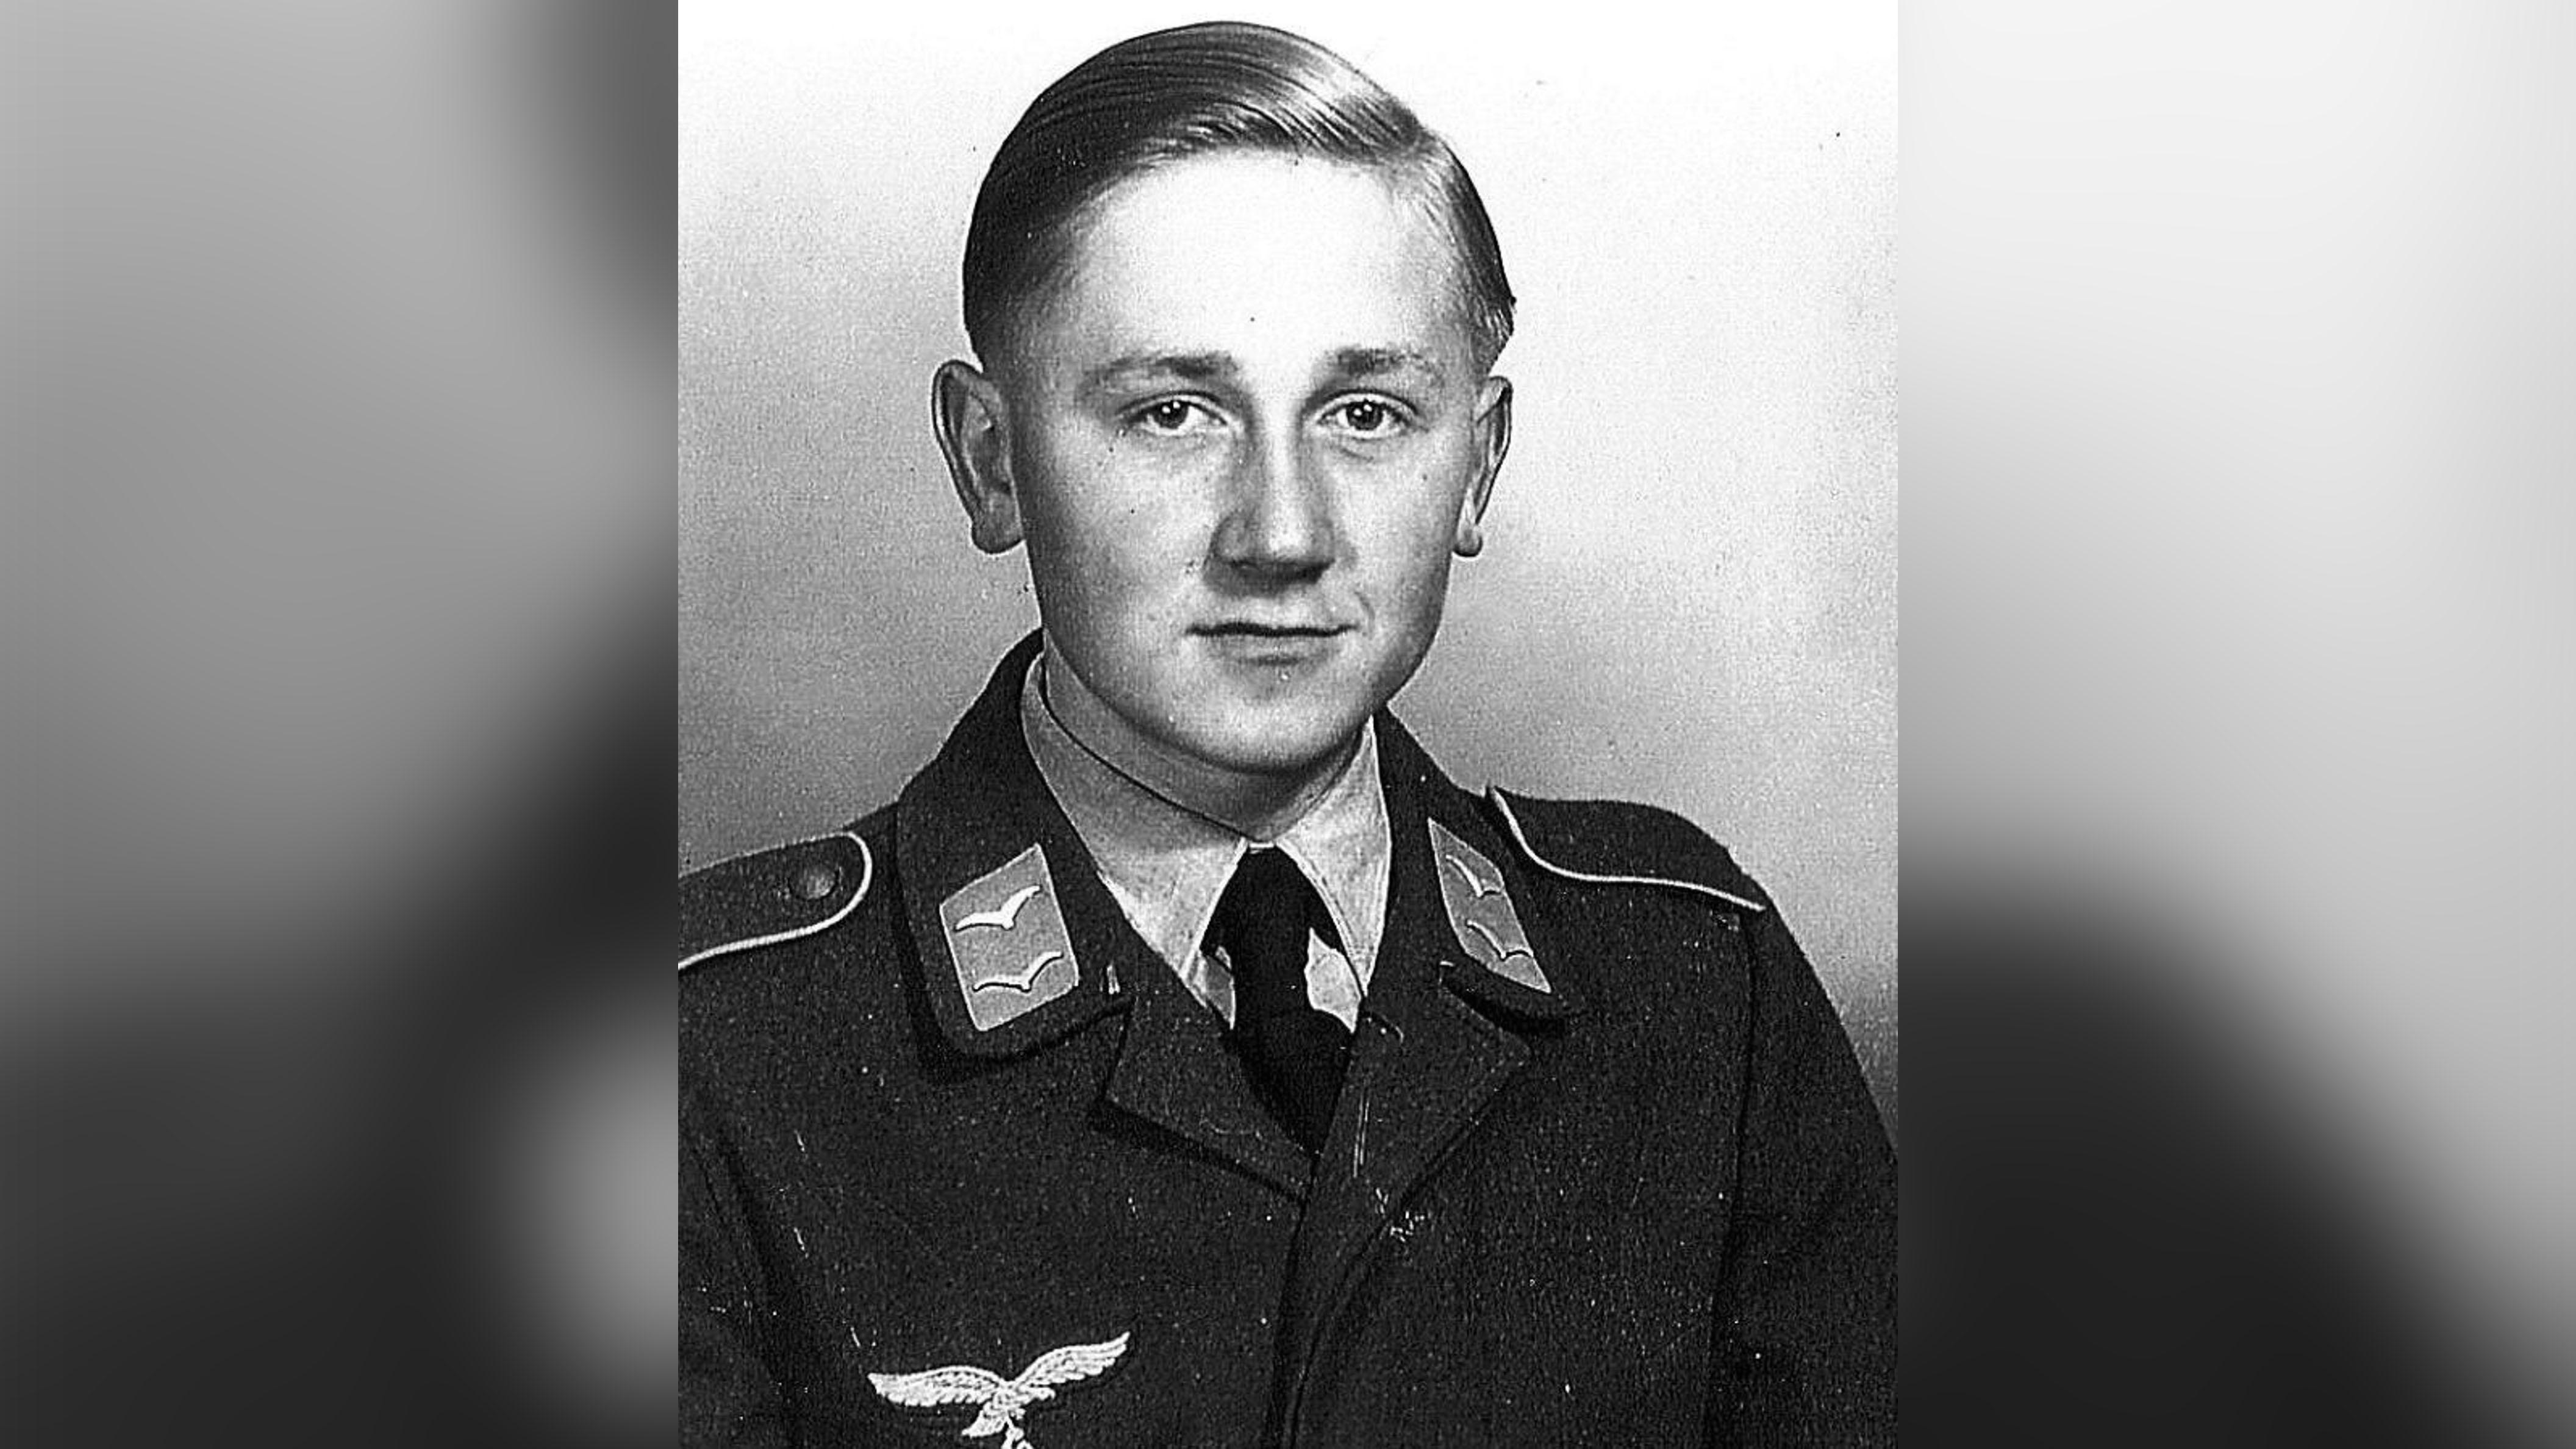 WWII Pilot Who Saved Village Identified 75yrs Later